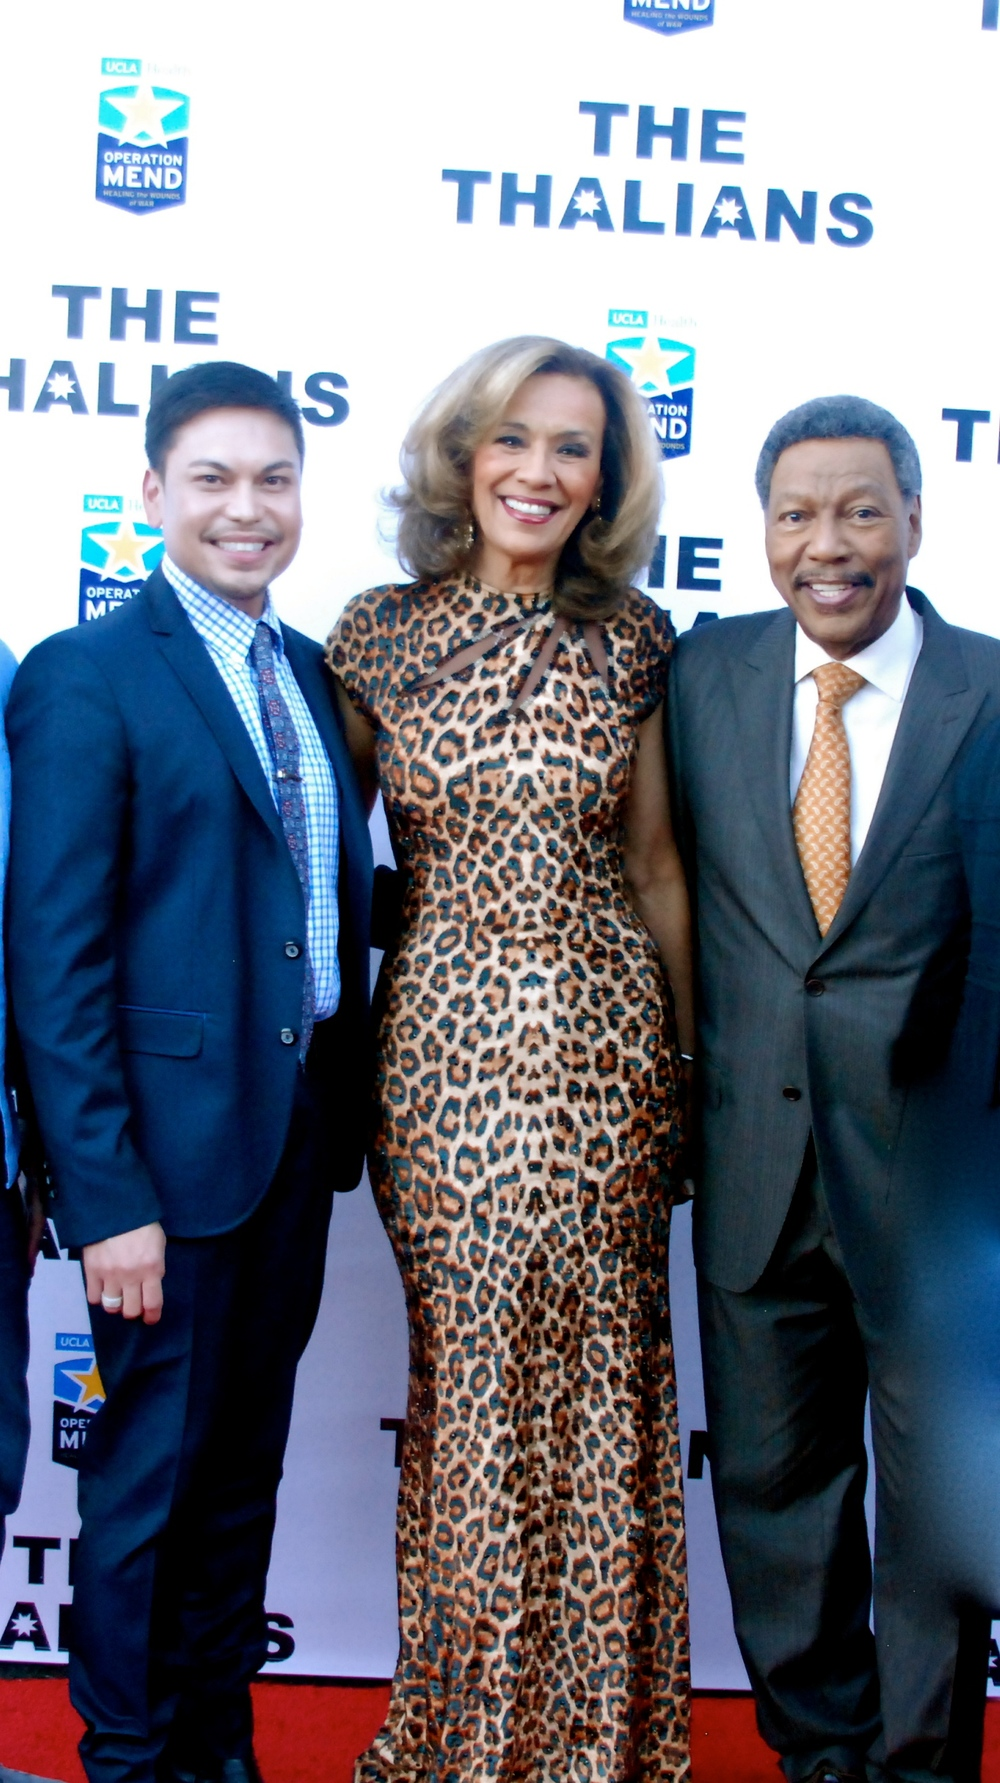 Marc with Marilyn McCoo and Billy Davis Jr.